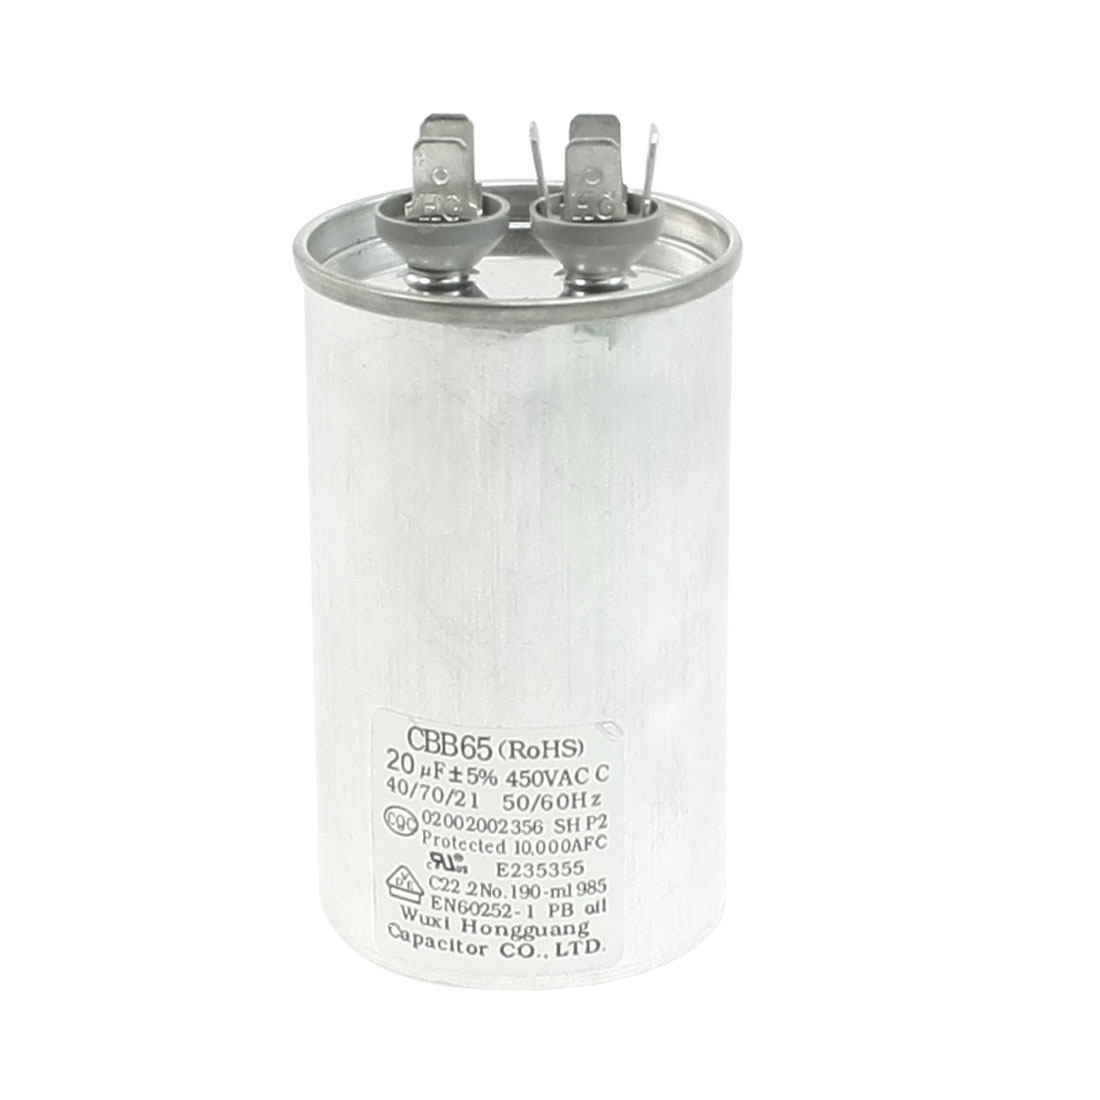 AC 450V 20uF 50/60Hz Metallized Polypropylene Film Motor Capacitor CBB65